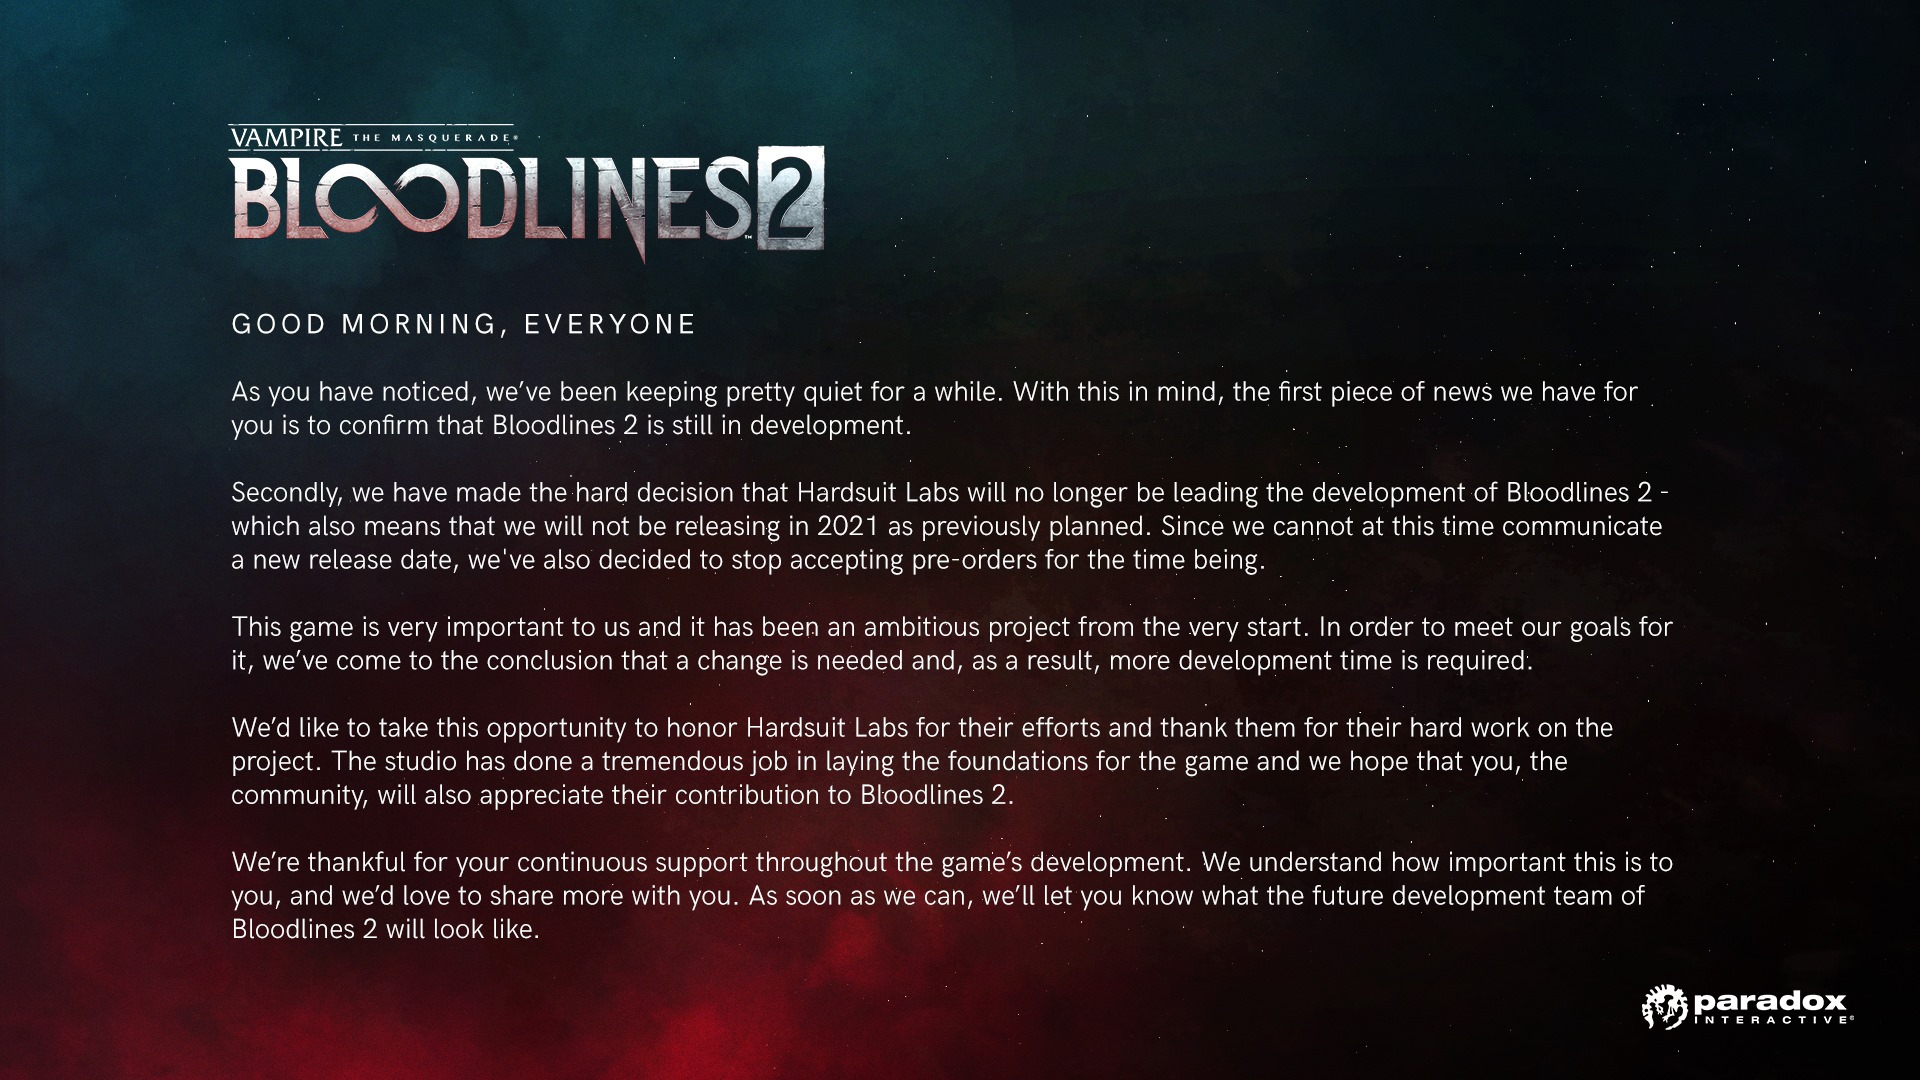 Good morning, everyone As you have noticed, we've been keeping pretty quiet for a while. With this in mind, the first piece of news we have for you is to confirm that Bloodlines 2 is still in development. Secondly, we have made the hard decision that Hardsuit Labs will no longer be leading the development of Bloodlines 2 - which also means that we will not be releasing in 2021 as previously planned. Since we cannot at this time communicate a new release date, we've also decided to stop accepting pre-orders for the time being. This game is very important to us and it has been an ambitious project from the very start. In order to meet our goals for it, we've come to the conclusion that a change is needed and, as a result, more development time is required. We'd like to take this opportunity to honor Hardsuit Labs for their efforts and thank them for their hard work on the project. The studio has done a tremendous job in laying the foundations for the game and we hope that you, the community, will also appreciate their contribution to Bloodlines 2. We're thankful for your continuous support throughout the game's development. We understand how important this is to you, and we'd love to share more with you. As soon as we can, we'll let you know what the future development team of Bloodlines 2 will look like.